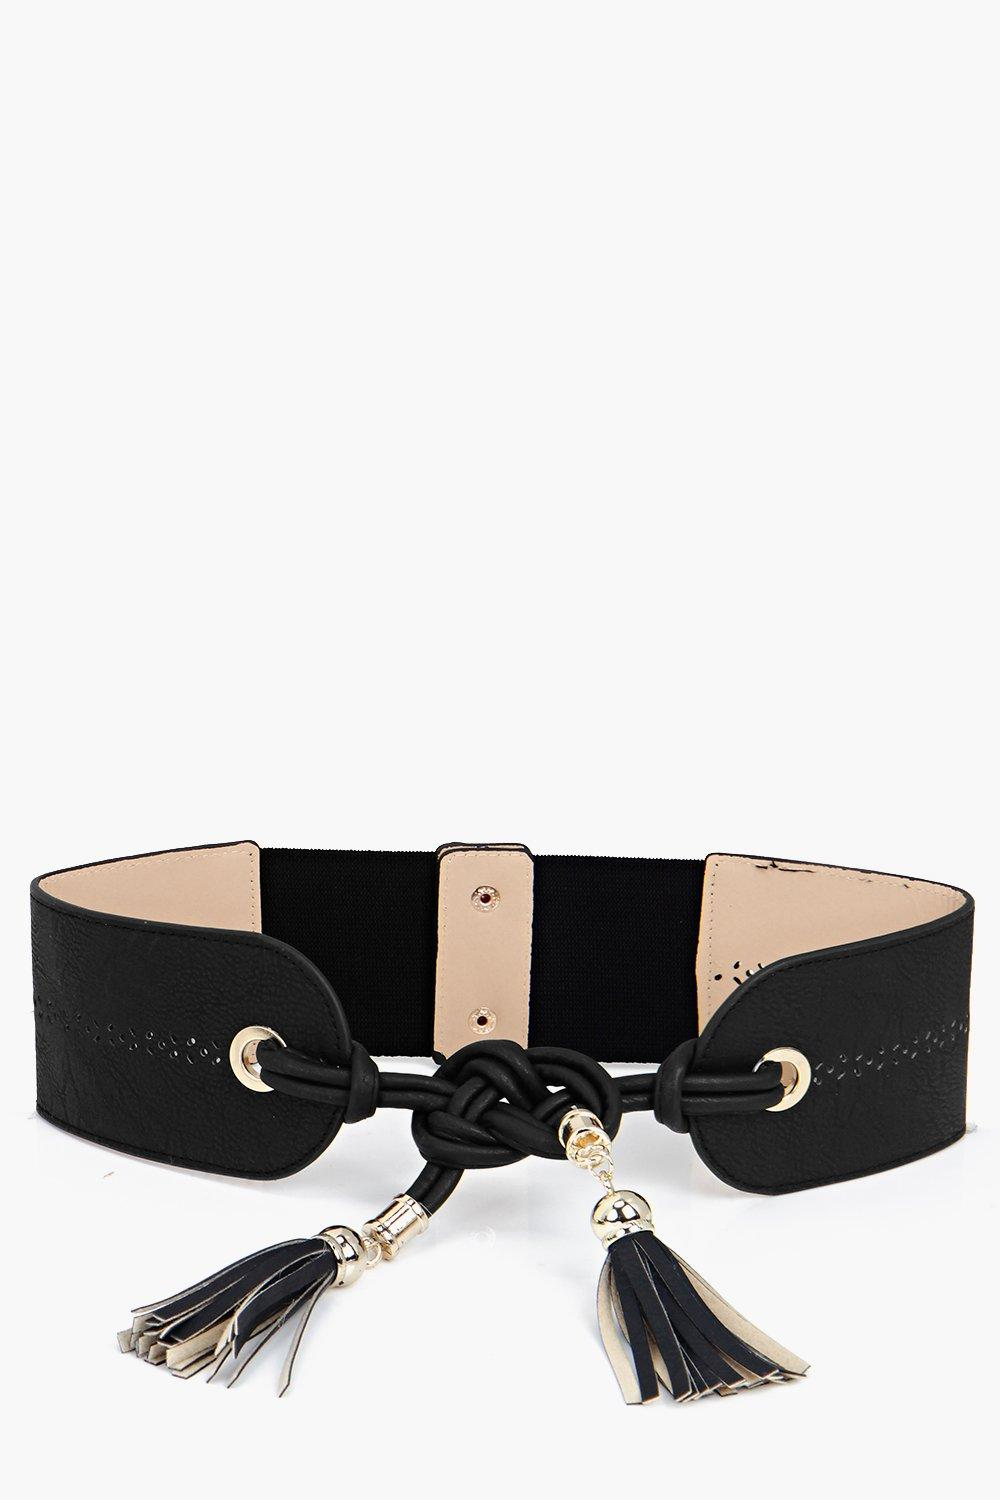 Knot And Tassel Obi Belt - black - Customise your